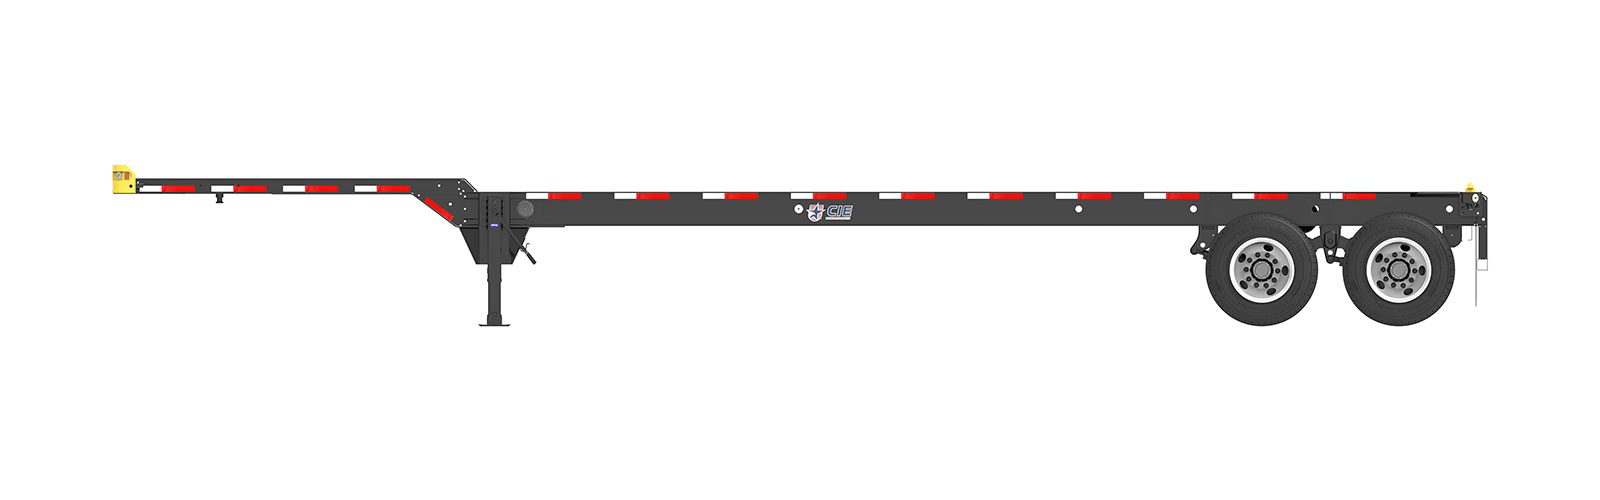 40' Gooseneck Tandem Container Chassis Orthographic Side View Final